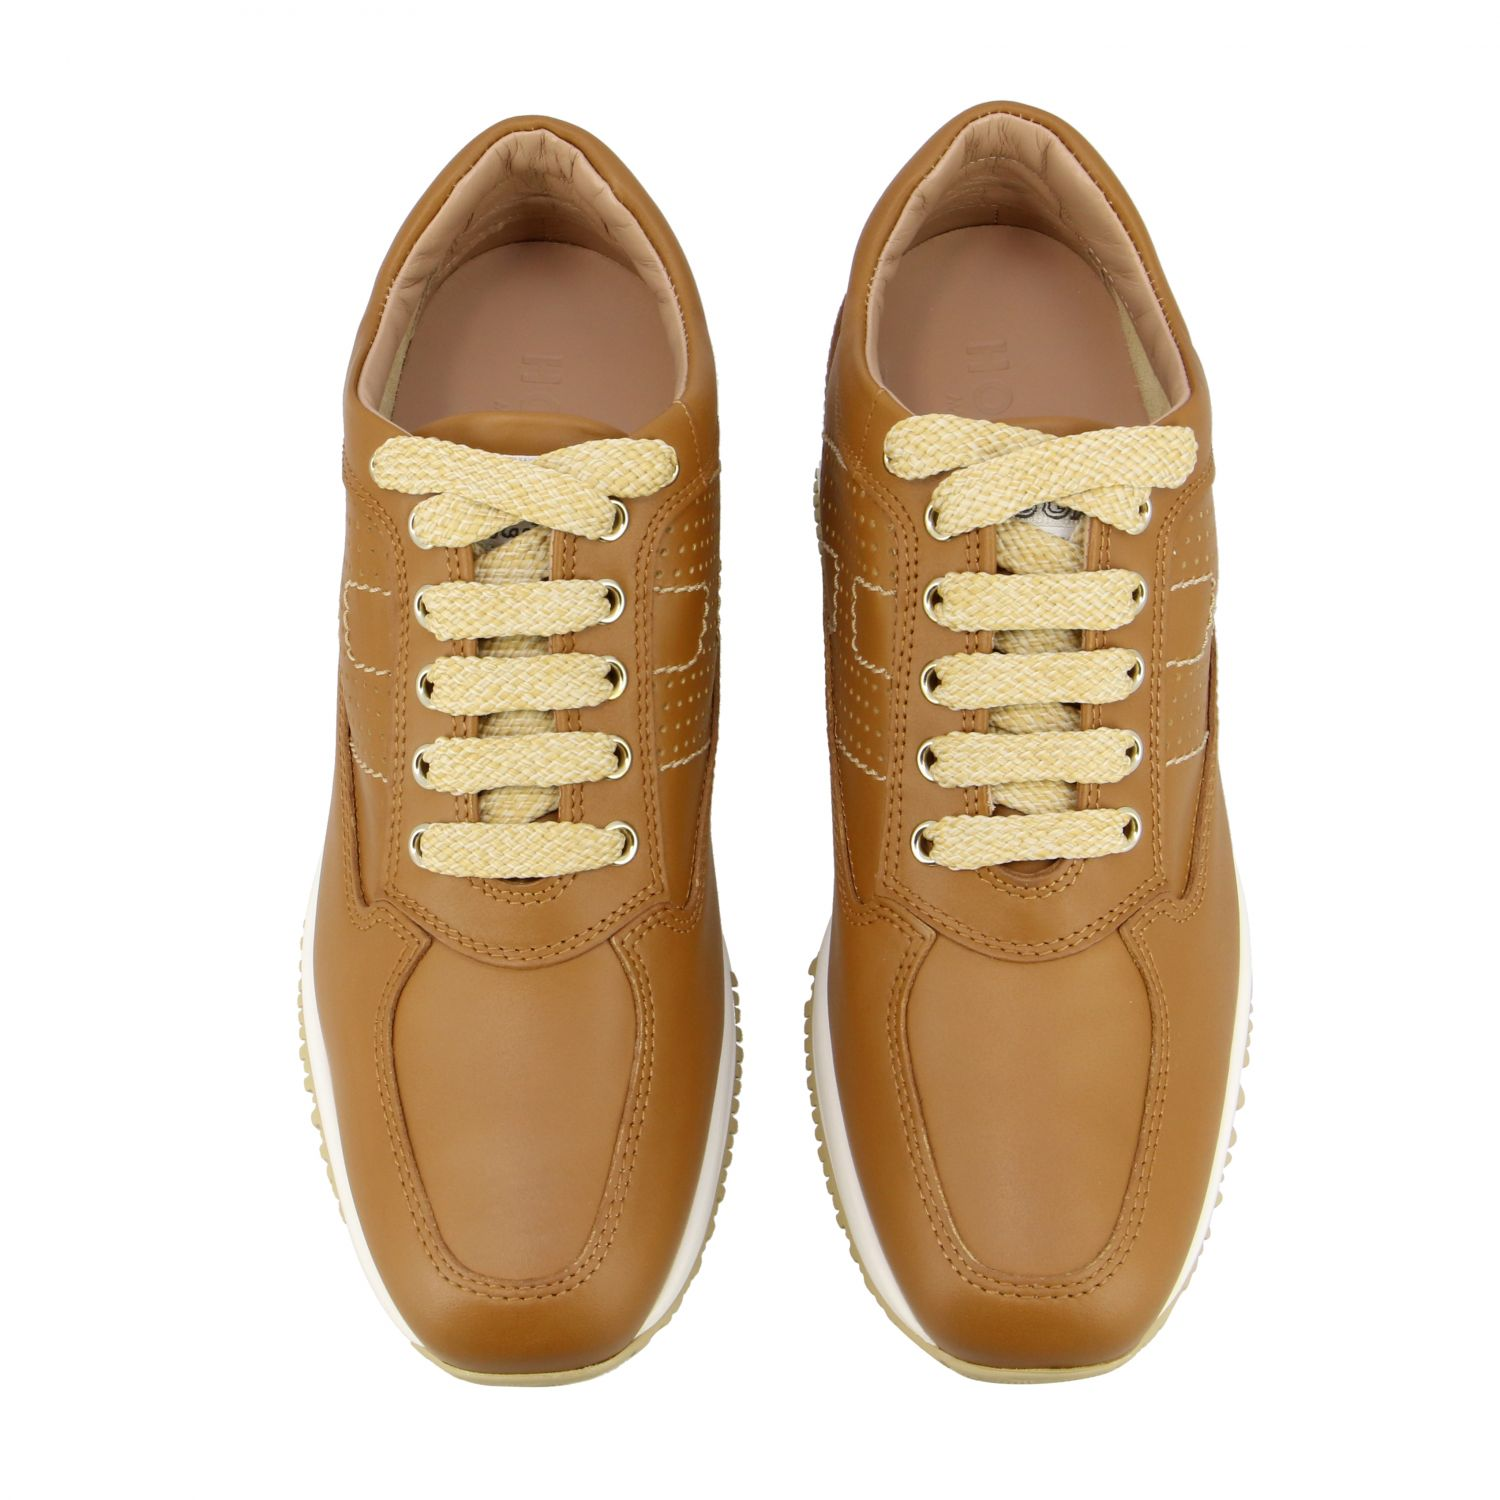 Interactive Hogan leather sneakers with perforated H leather 3